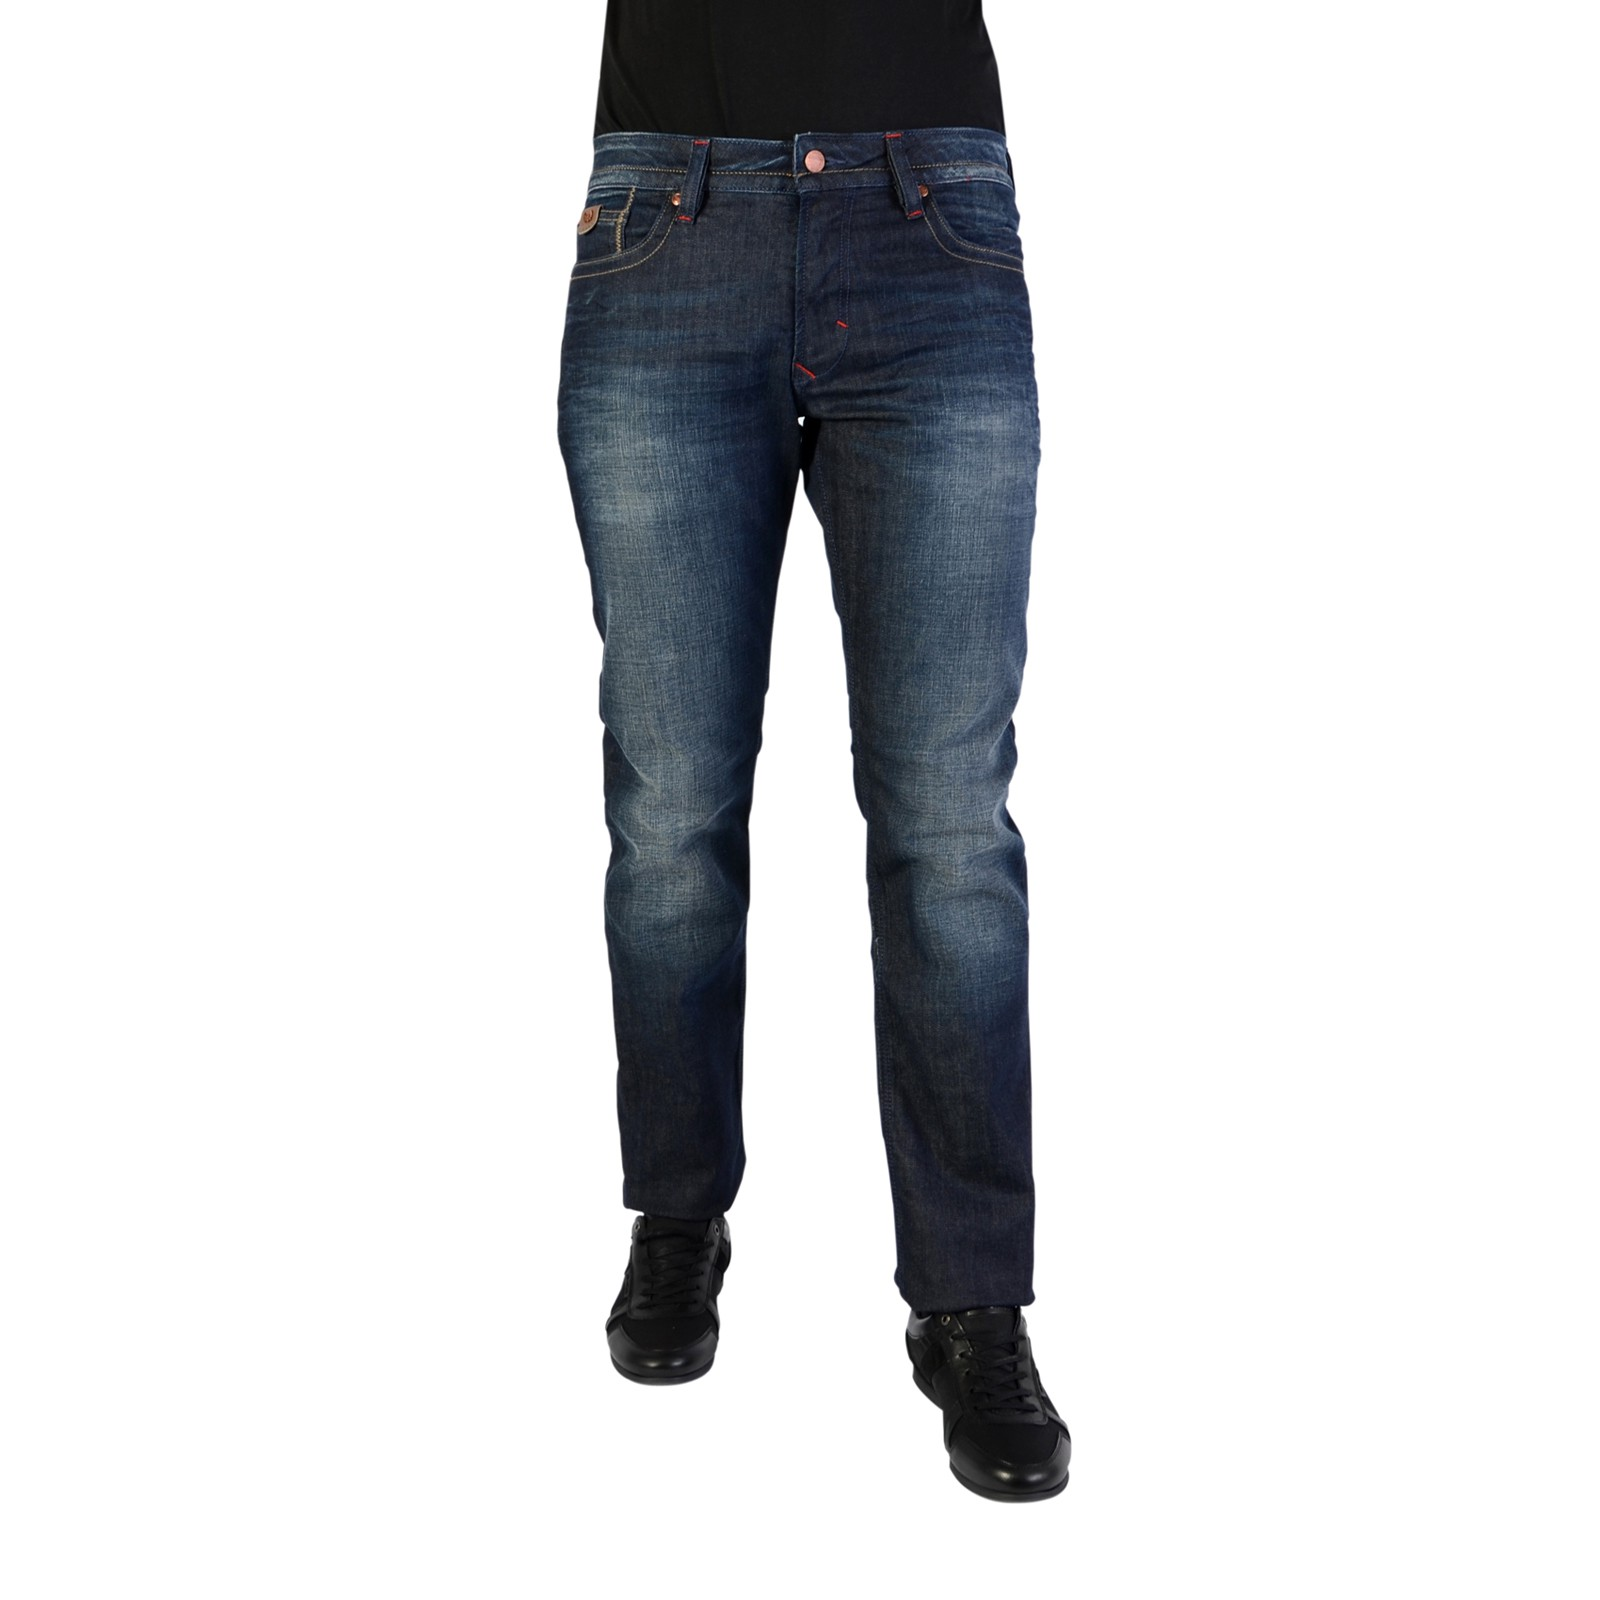 Chic Galerie Jeans Kaporal Jeans Chic Galerie Broz Kaporal Jeans Kaporal Broz vYb7gyIf6